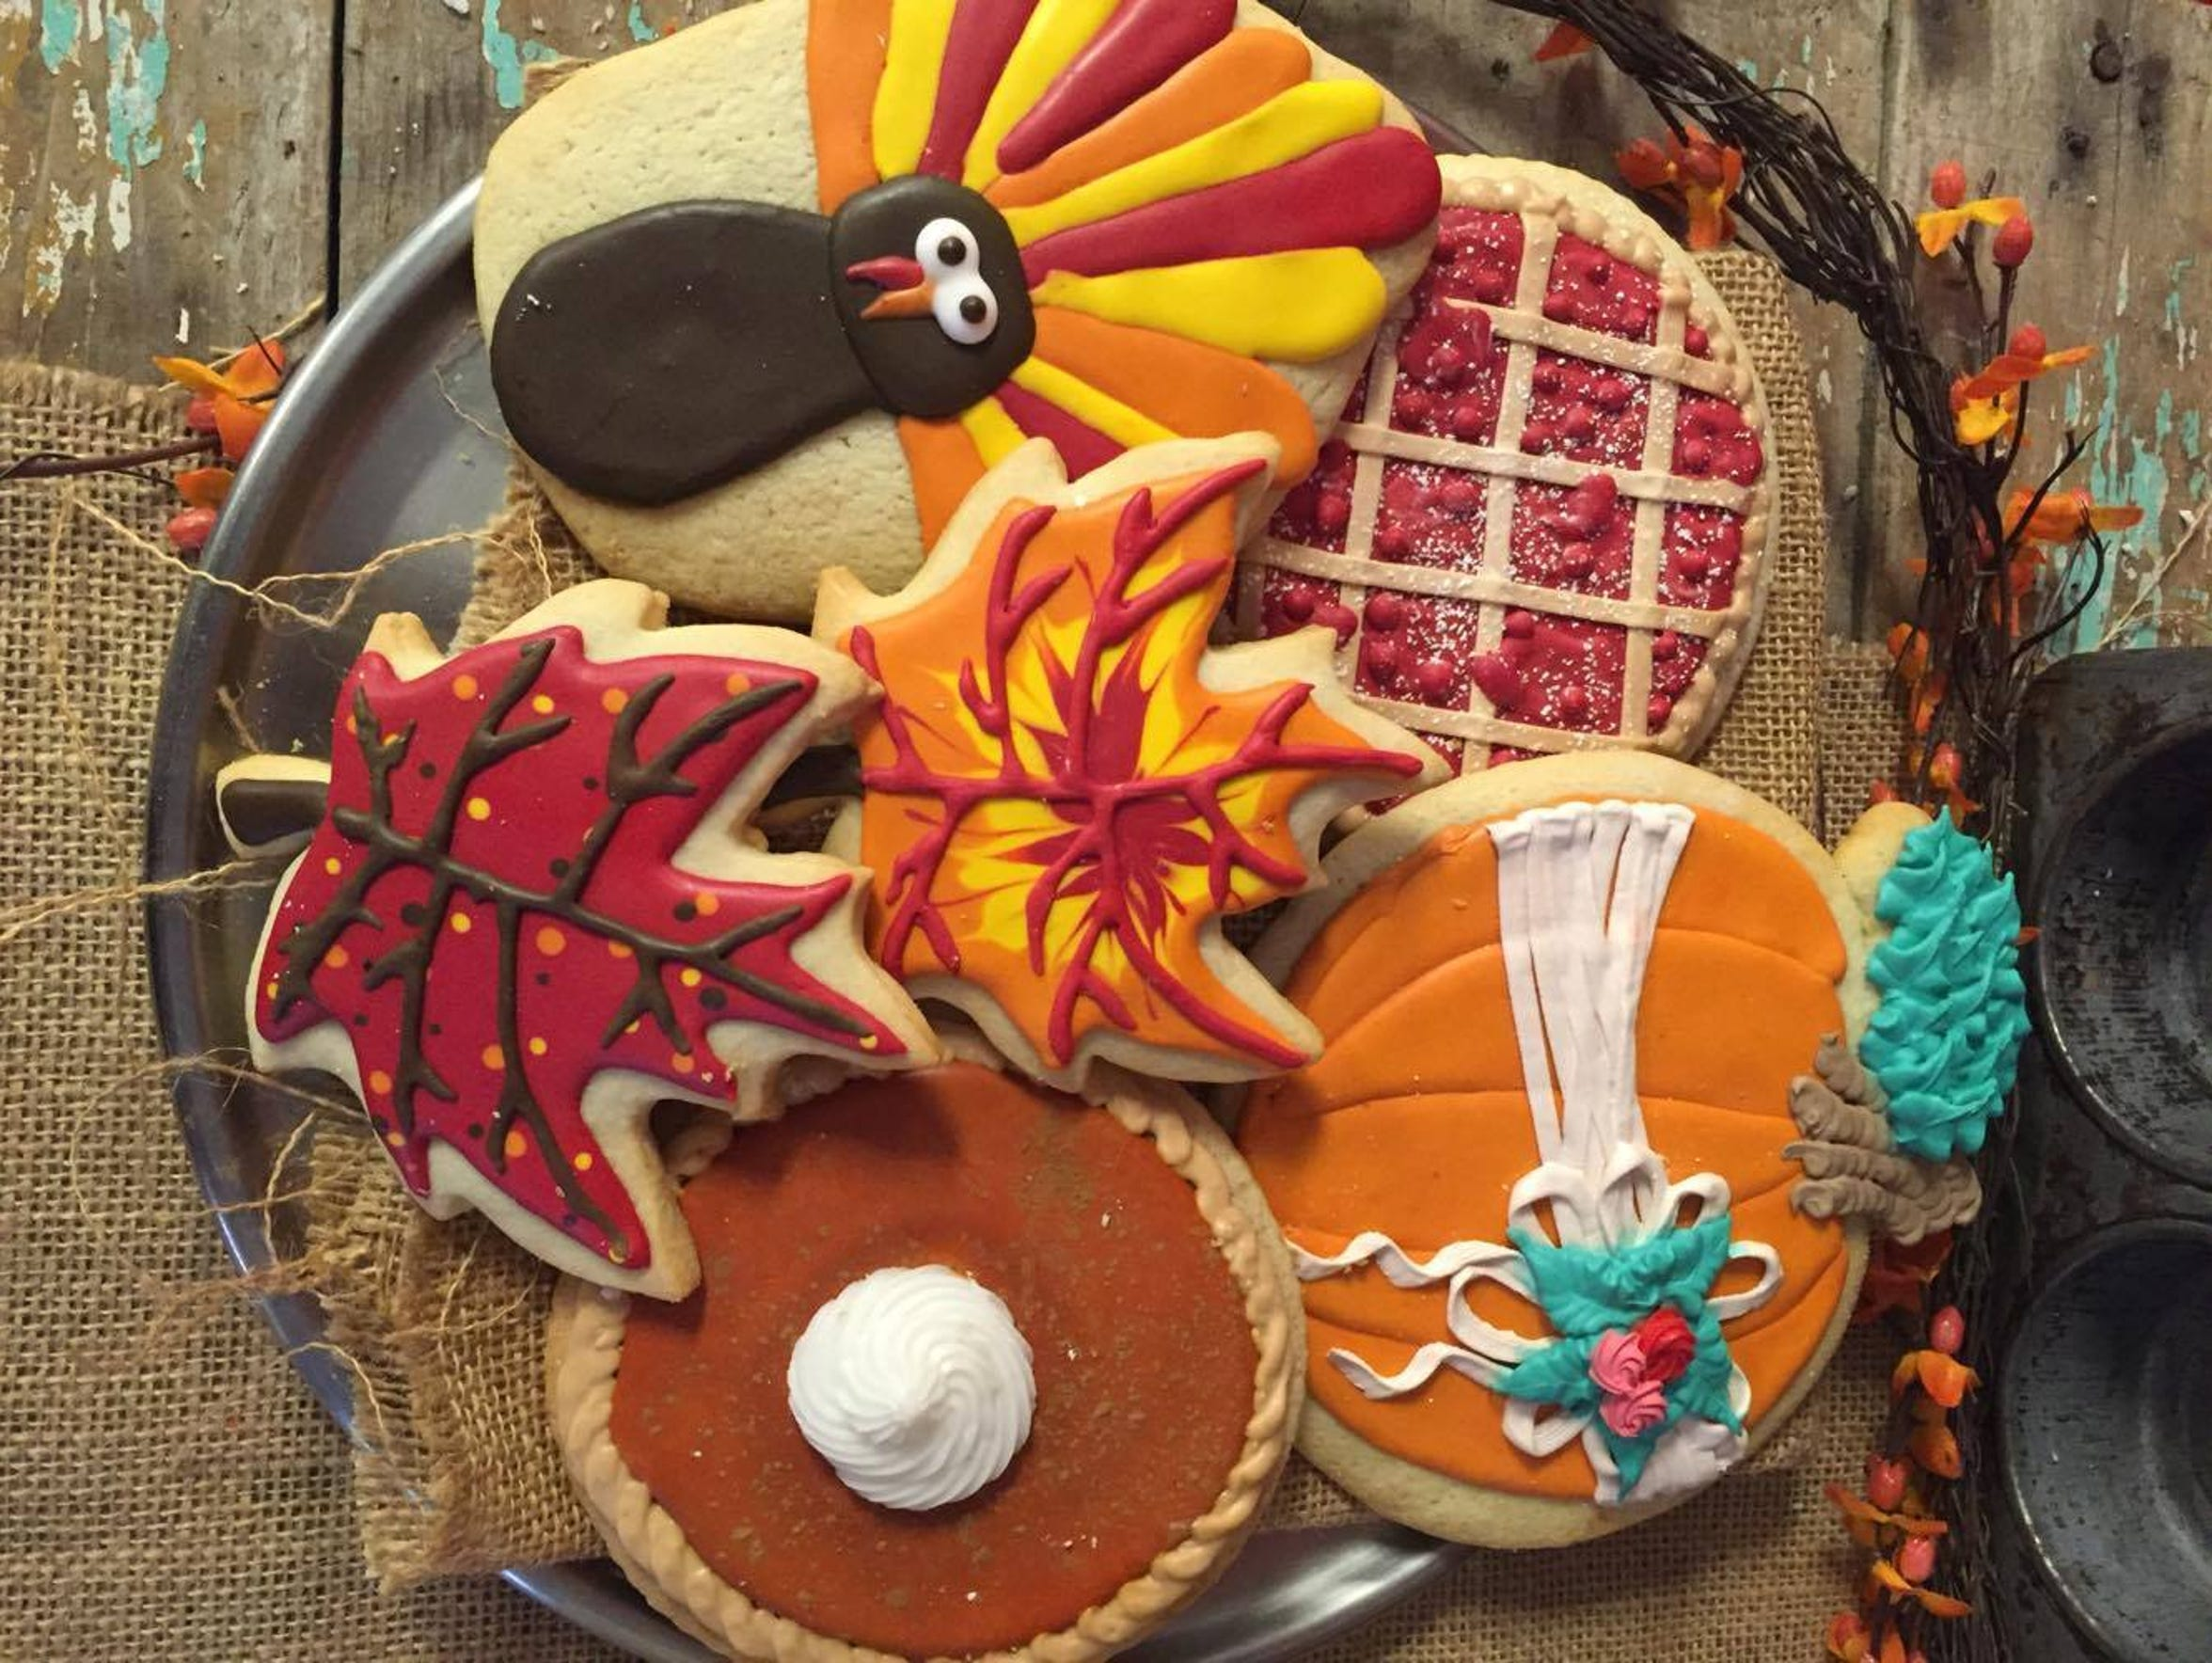 Sweet Lola's will offer a cookie decorating class this